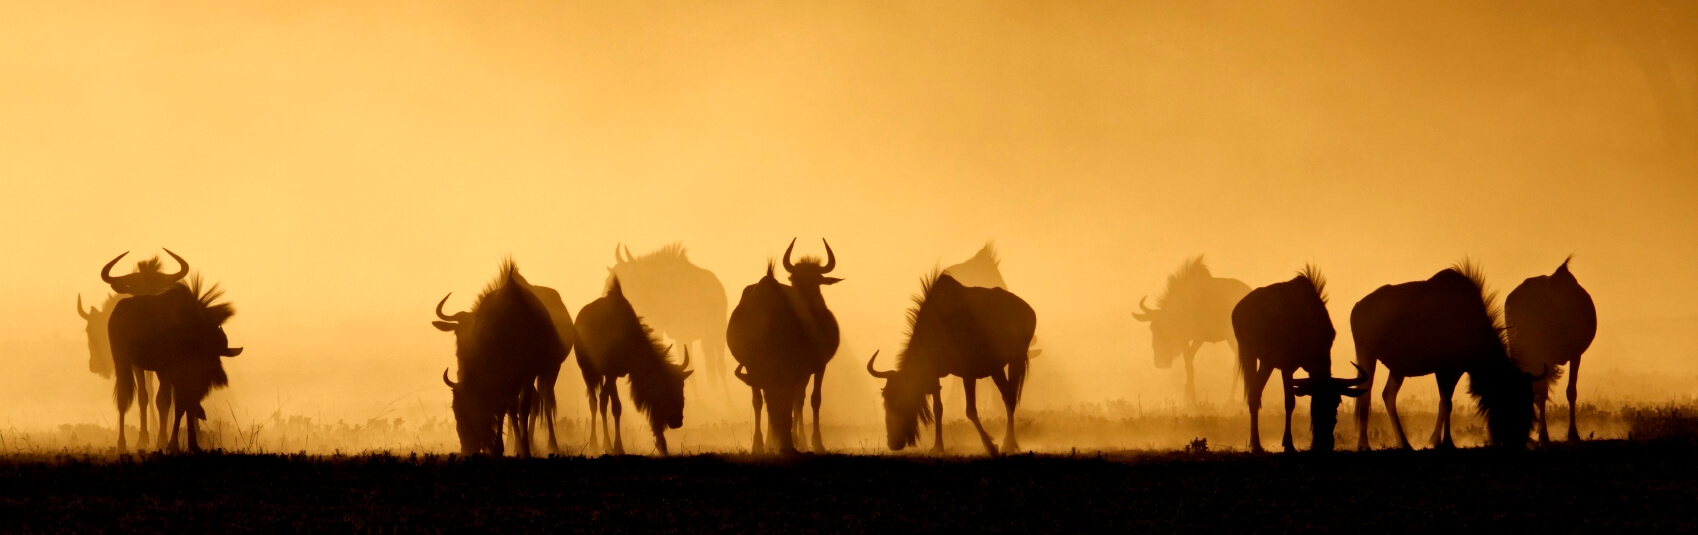 Blue-Wildebeest-in-Dust_Crop3